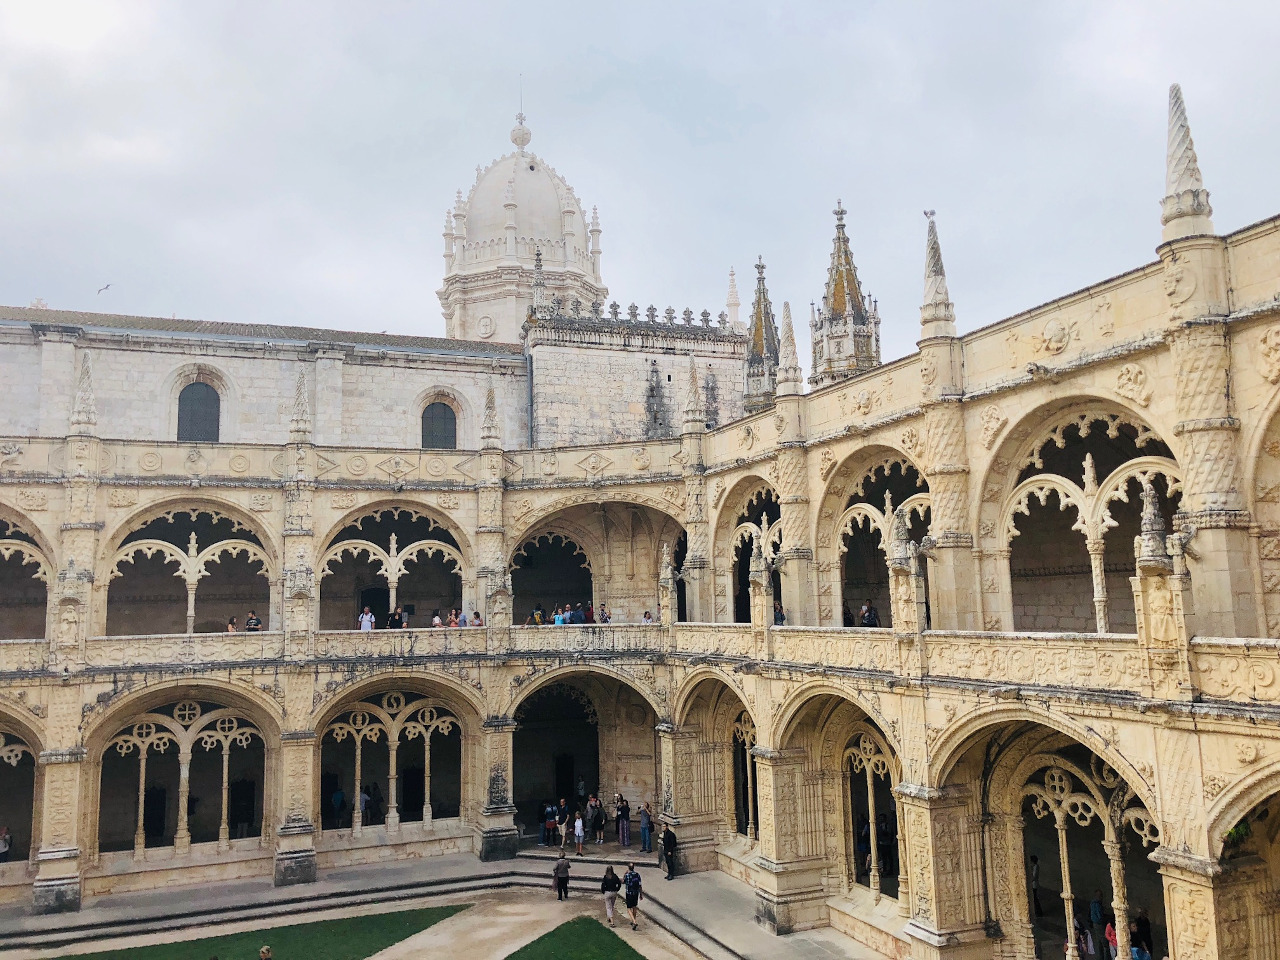 Jerónimos Monastery (Mosteiro dos Jerónimos) is one of the best things to see in Belem, Lisbon. Use this Belem guide to discover all the places to visit in Belem on your Lisbon trip